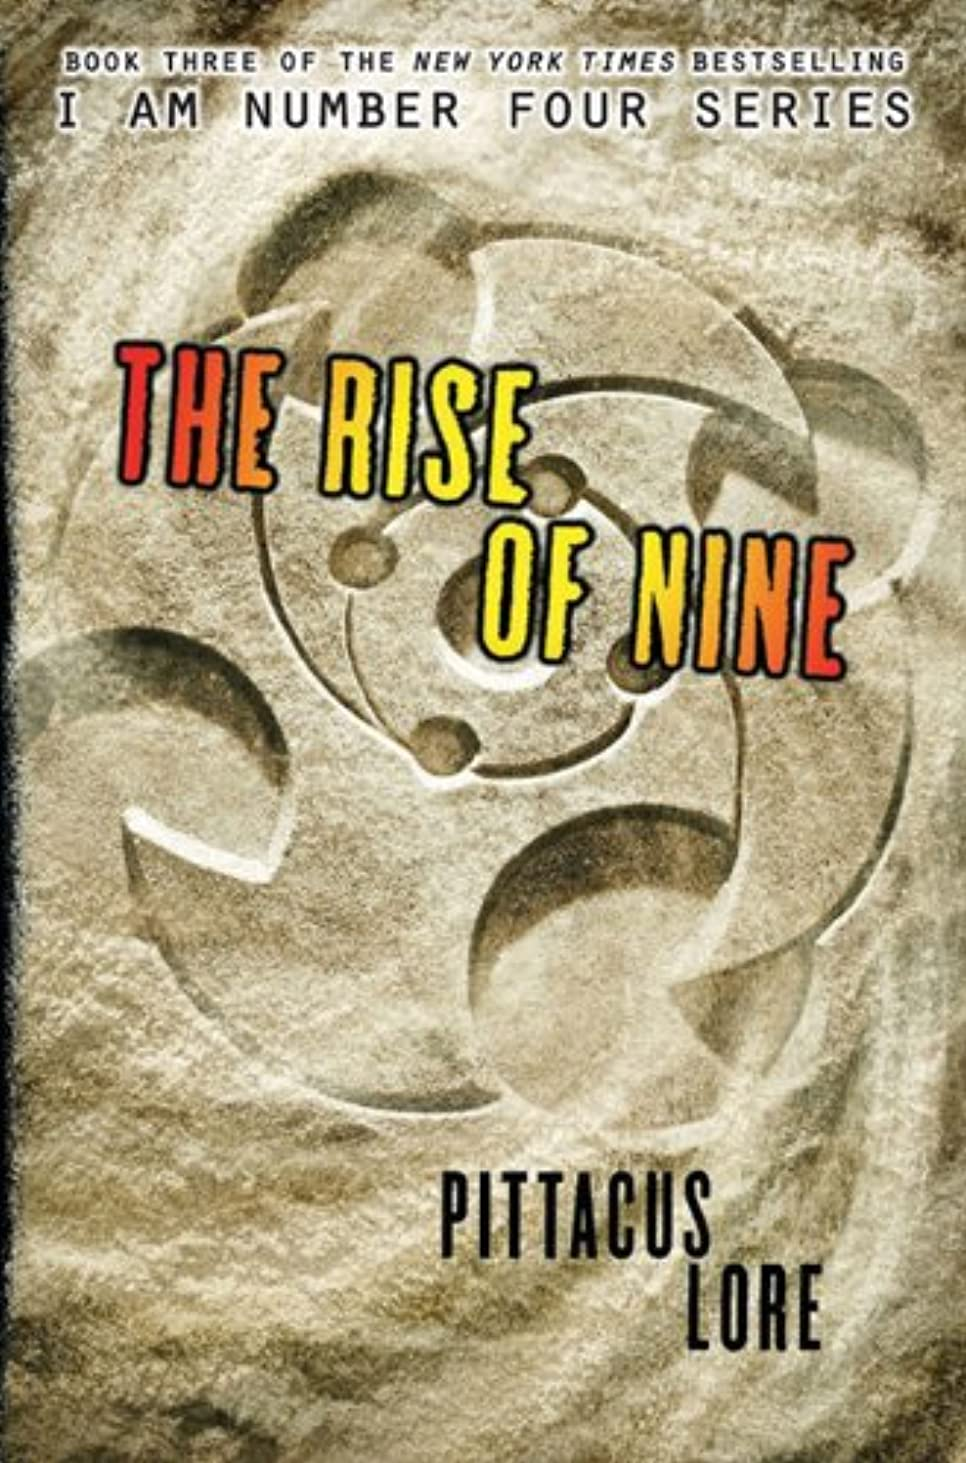 学部長懐疑的検索The Rise of Nine (Lorien Legacies Book 3) (English Edition)